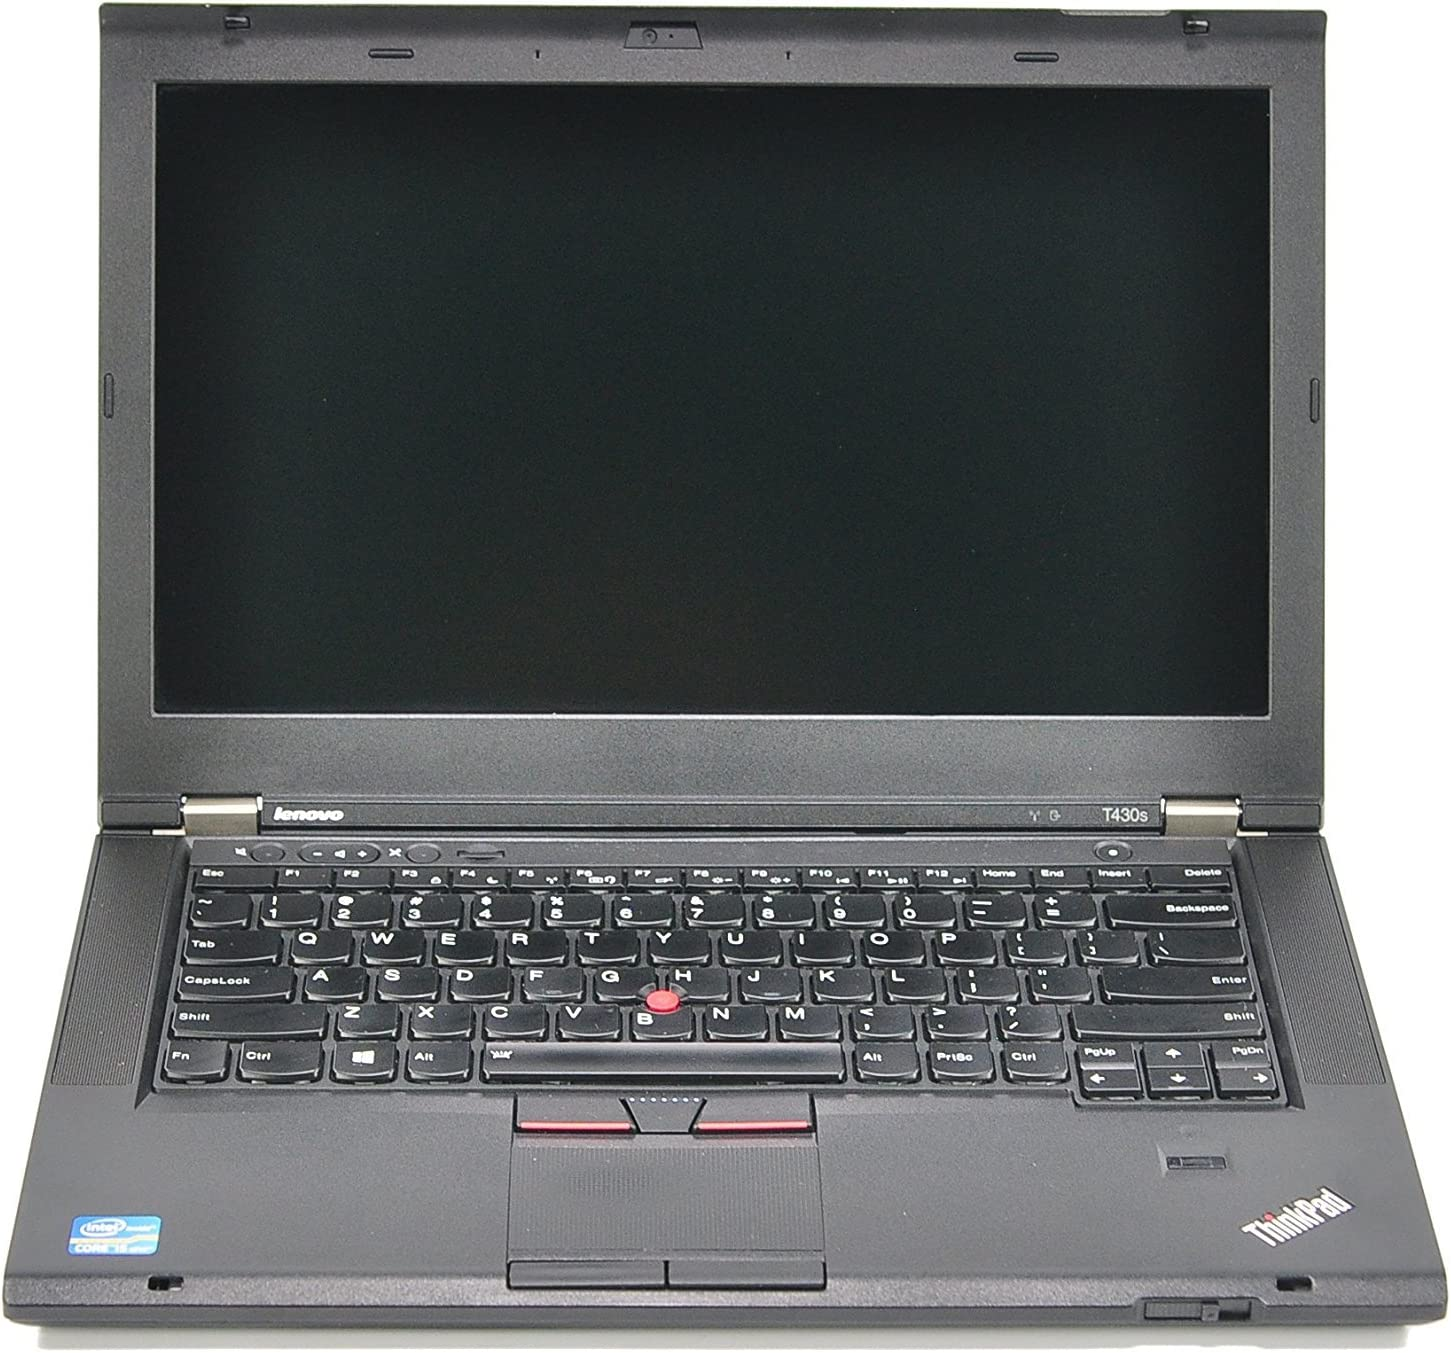 Lenovo Thinkpad T430 Built Business Laptop Computer (Intel Dual Core i5 Up to 3.3 Ghz Processor, 8GB Memory, 320GB HDD, Windows 10 Professional)